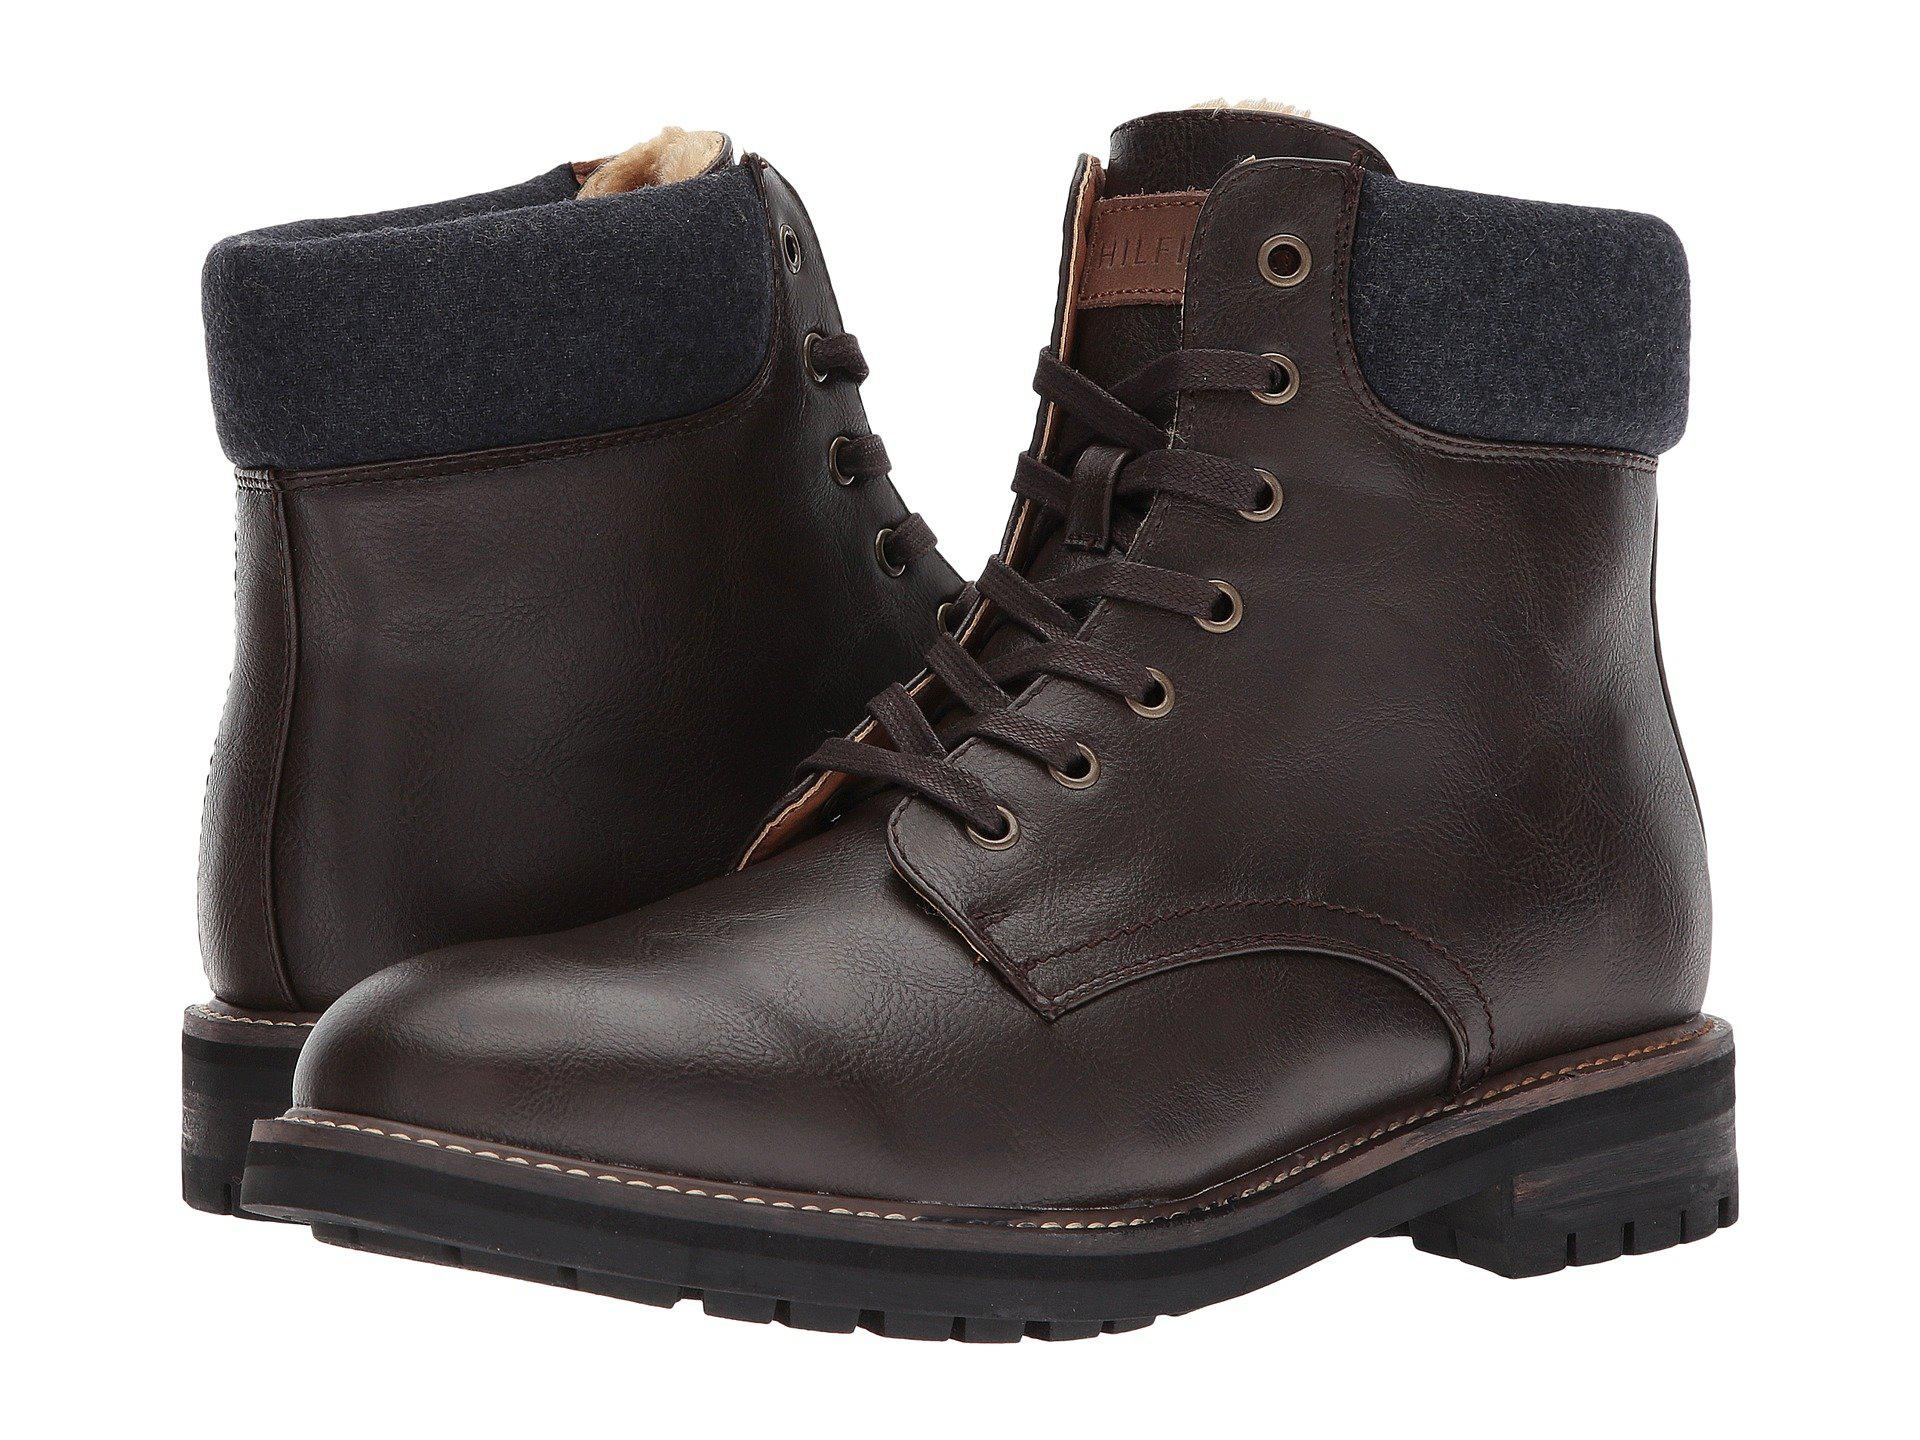 Price Reduced Mens Boots - Tommy Hilfiger Hollins Brown